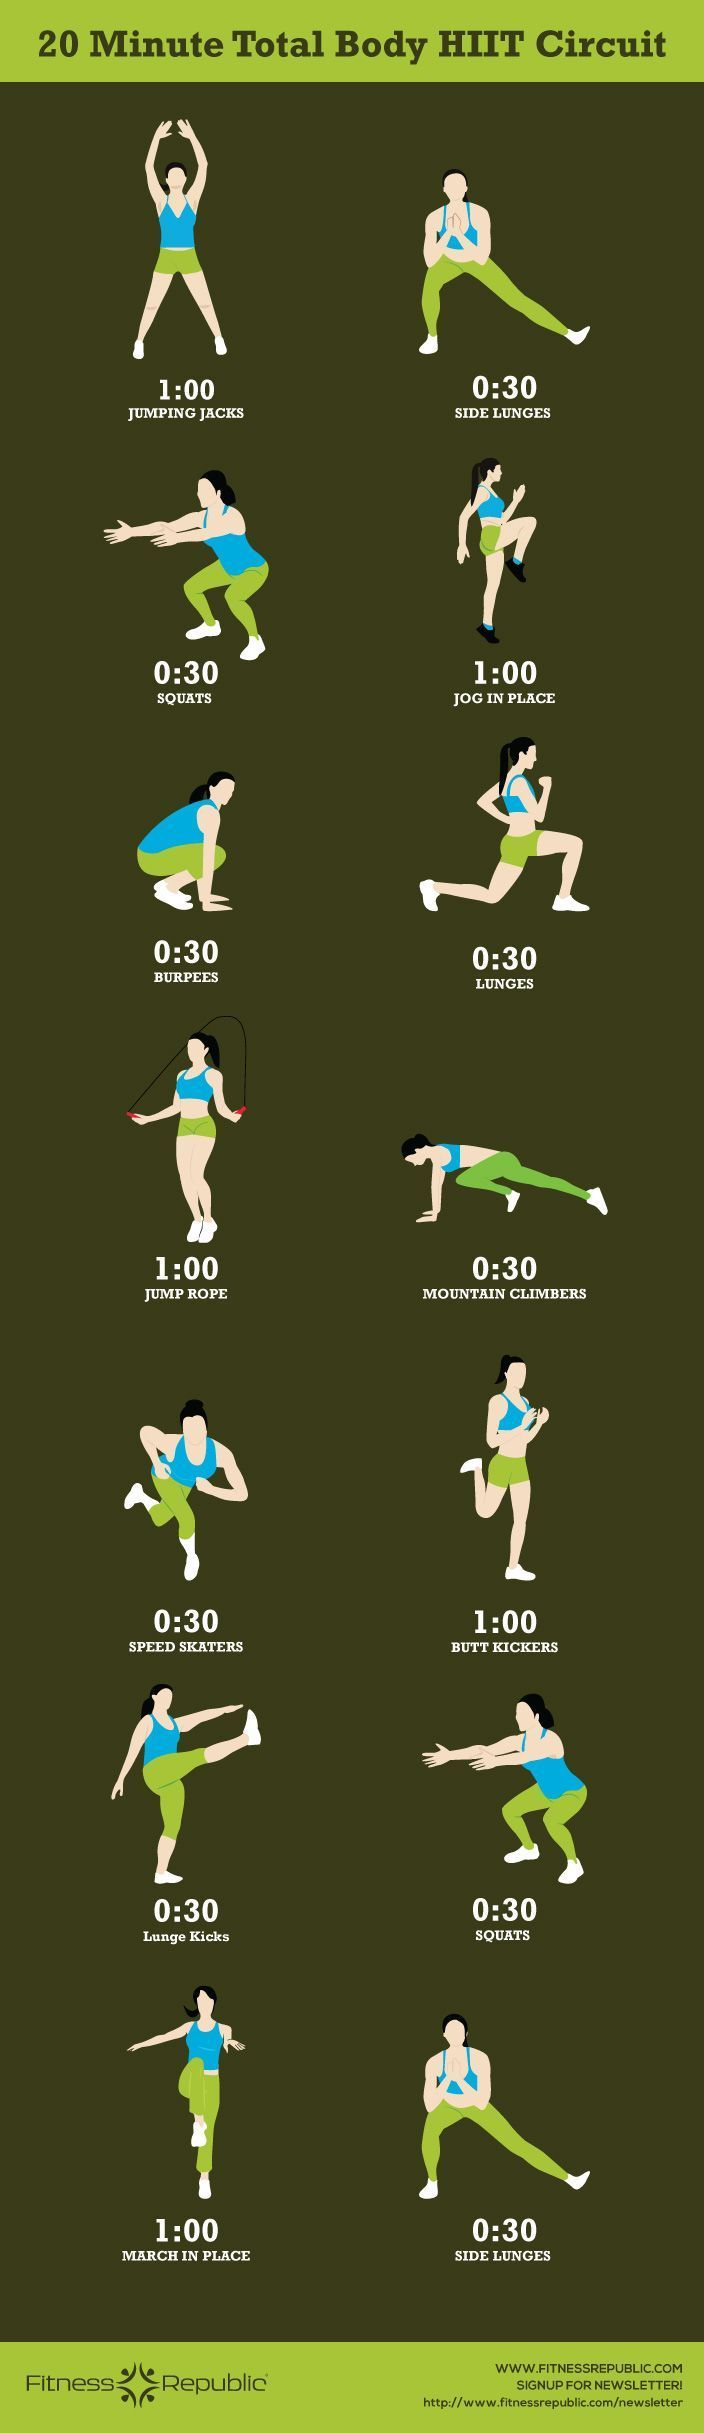 20-Minute Total Body HIIT Circuit